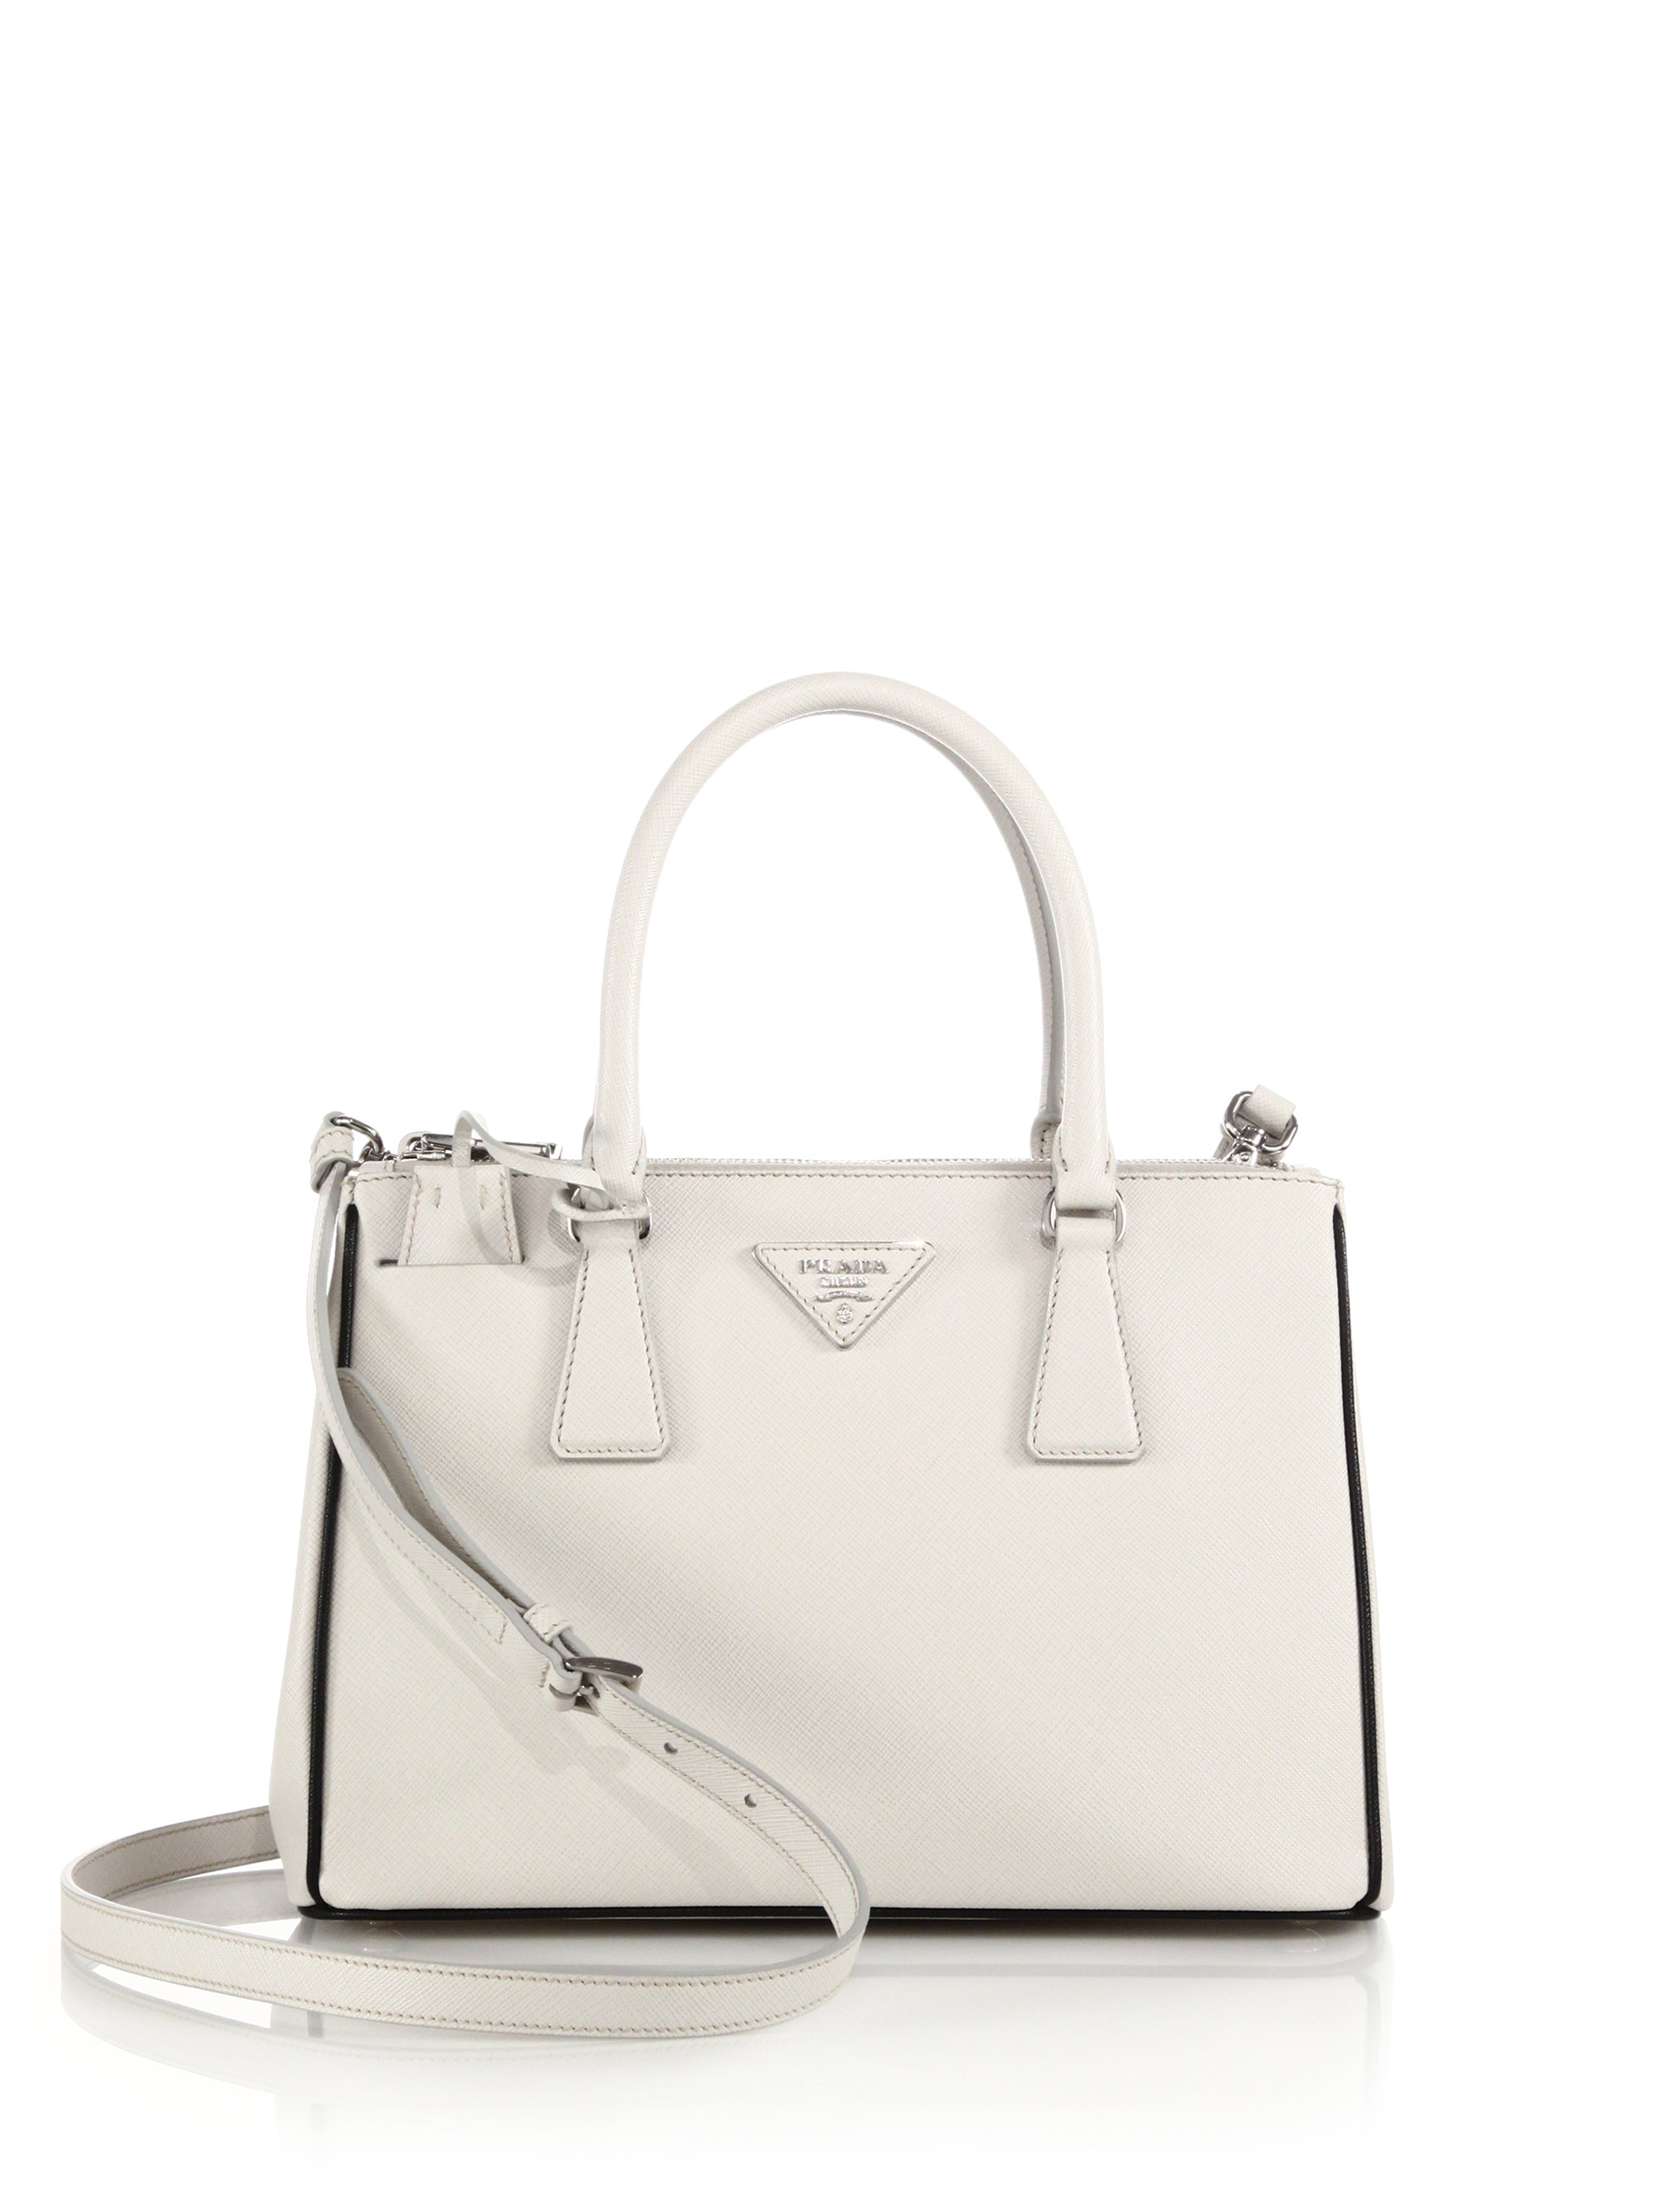 7ff36aab72d4 Prada Saffiano Lux Small Double-zip Tote in White - Lyst